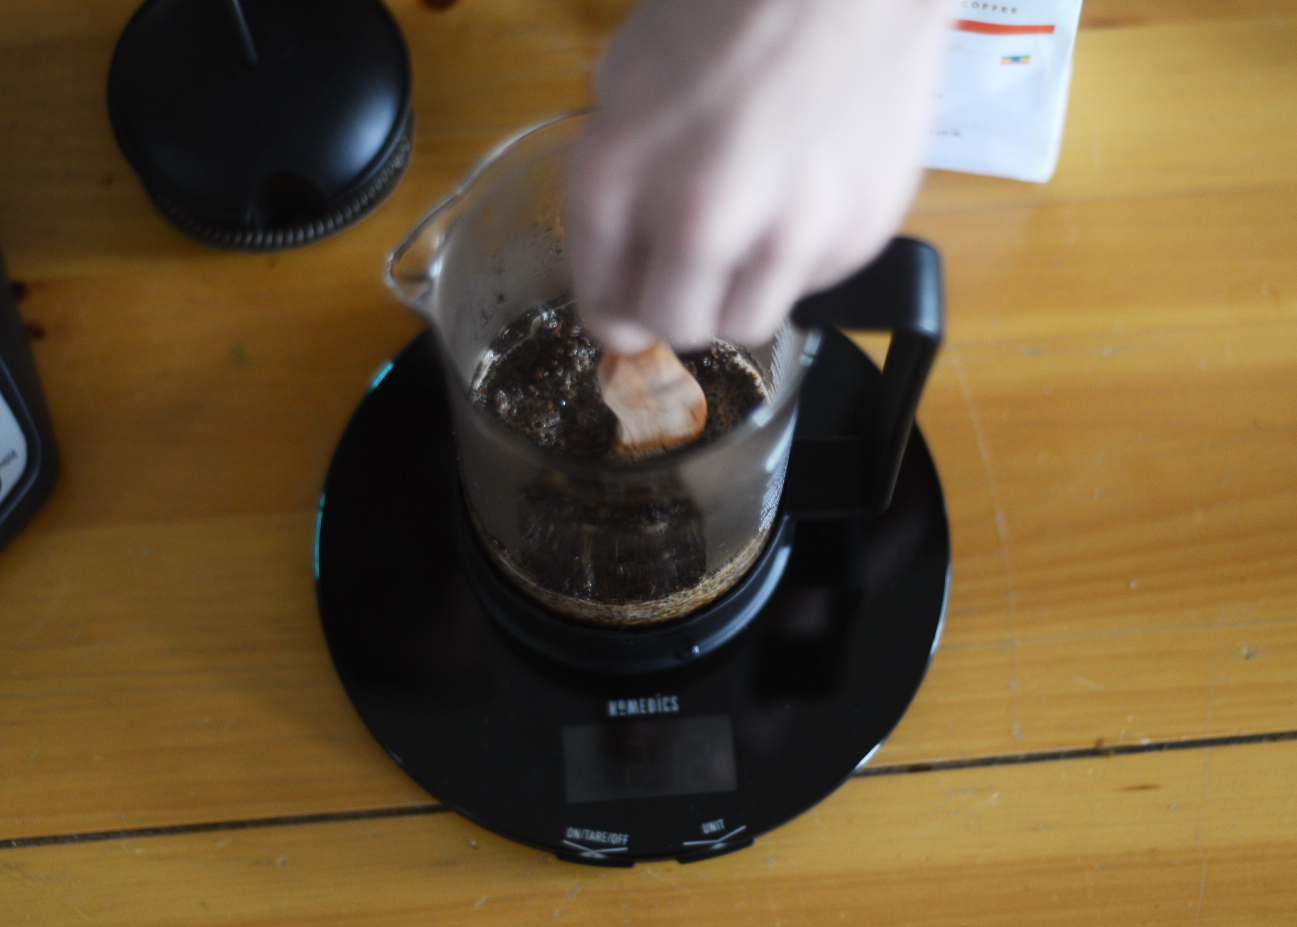 french press first stir